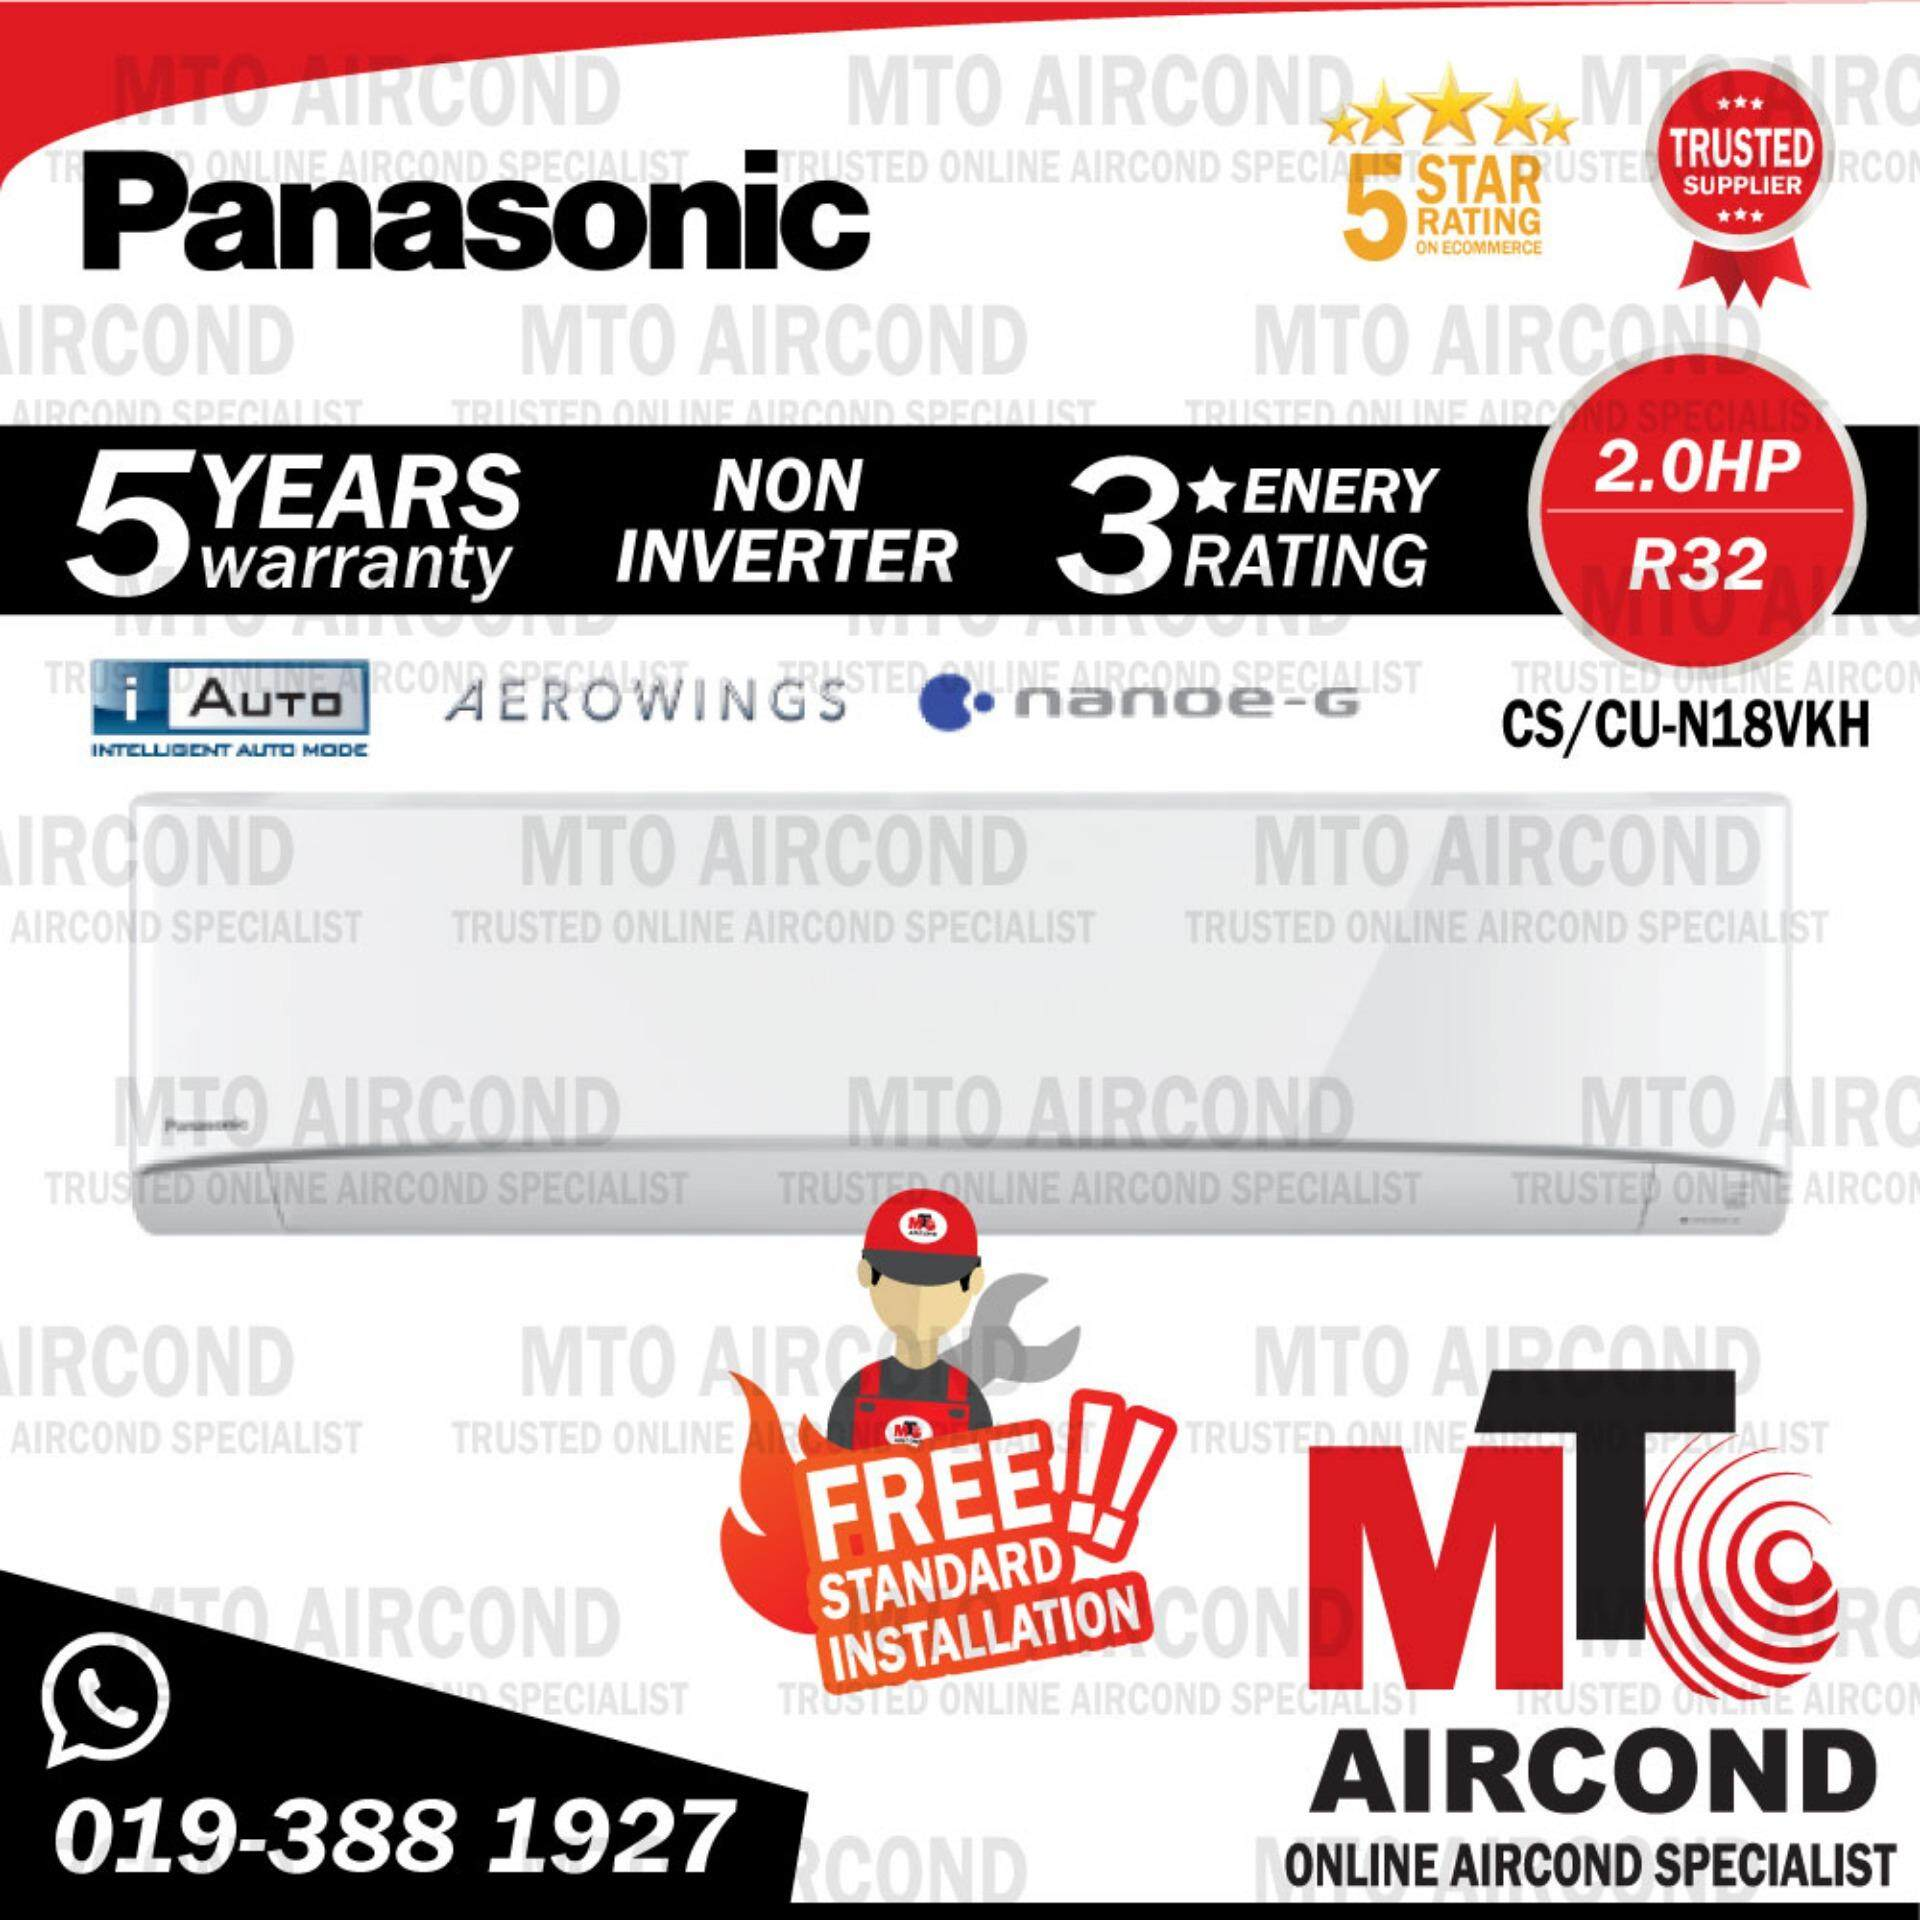 ( FREE INSTALLATION ) PANASONIC R32 2HP DELUXE NON INVERTER AIR CONDITIONDER AIRCOND CS/CU-N18VKH